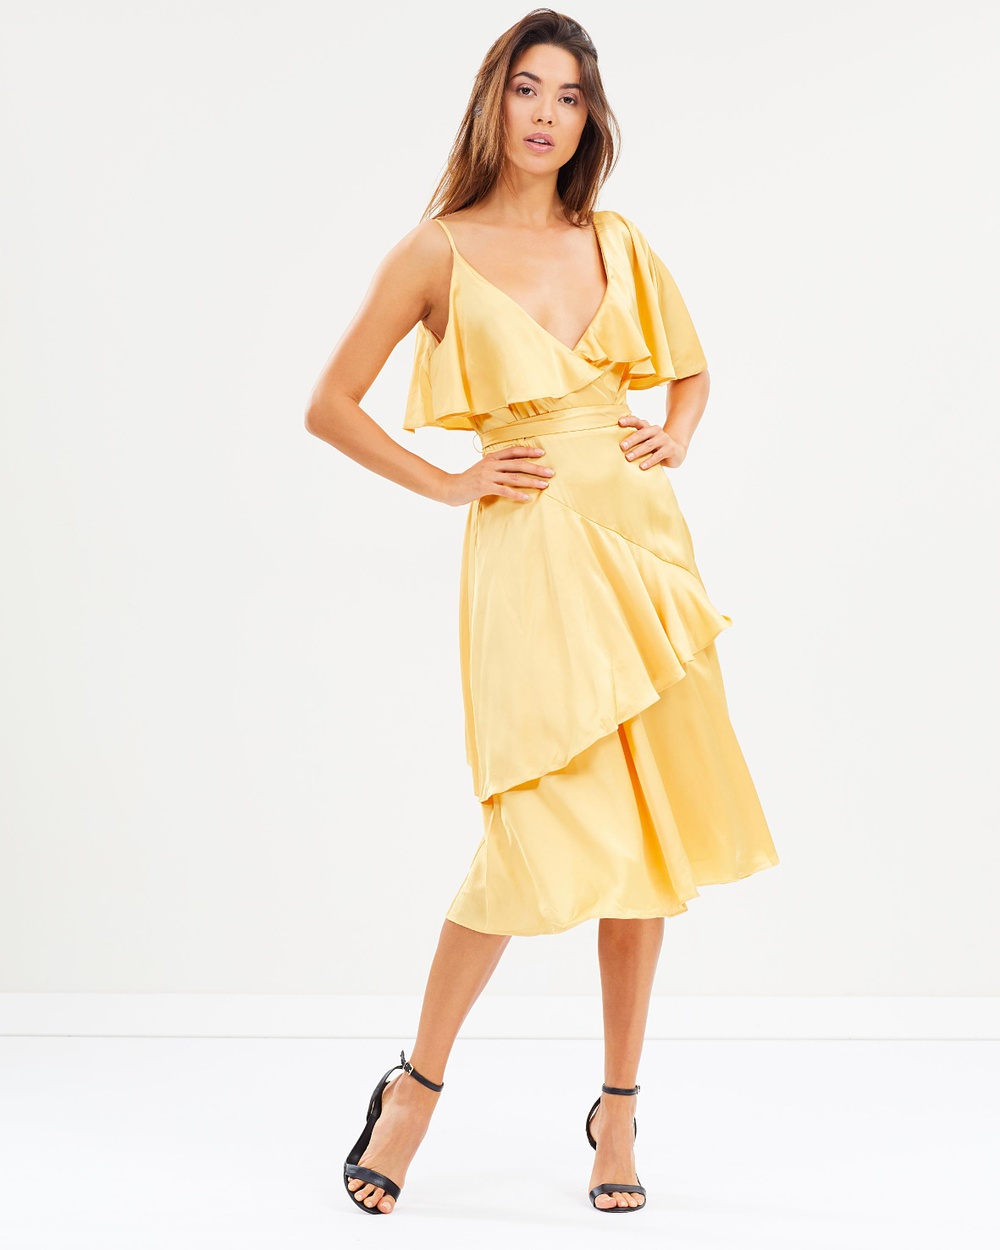 Lost Ink Deconstructed Tea Dress Bridesmaid Dresses Yellow Deconstructed Tea Dress